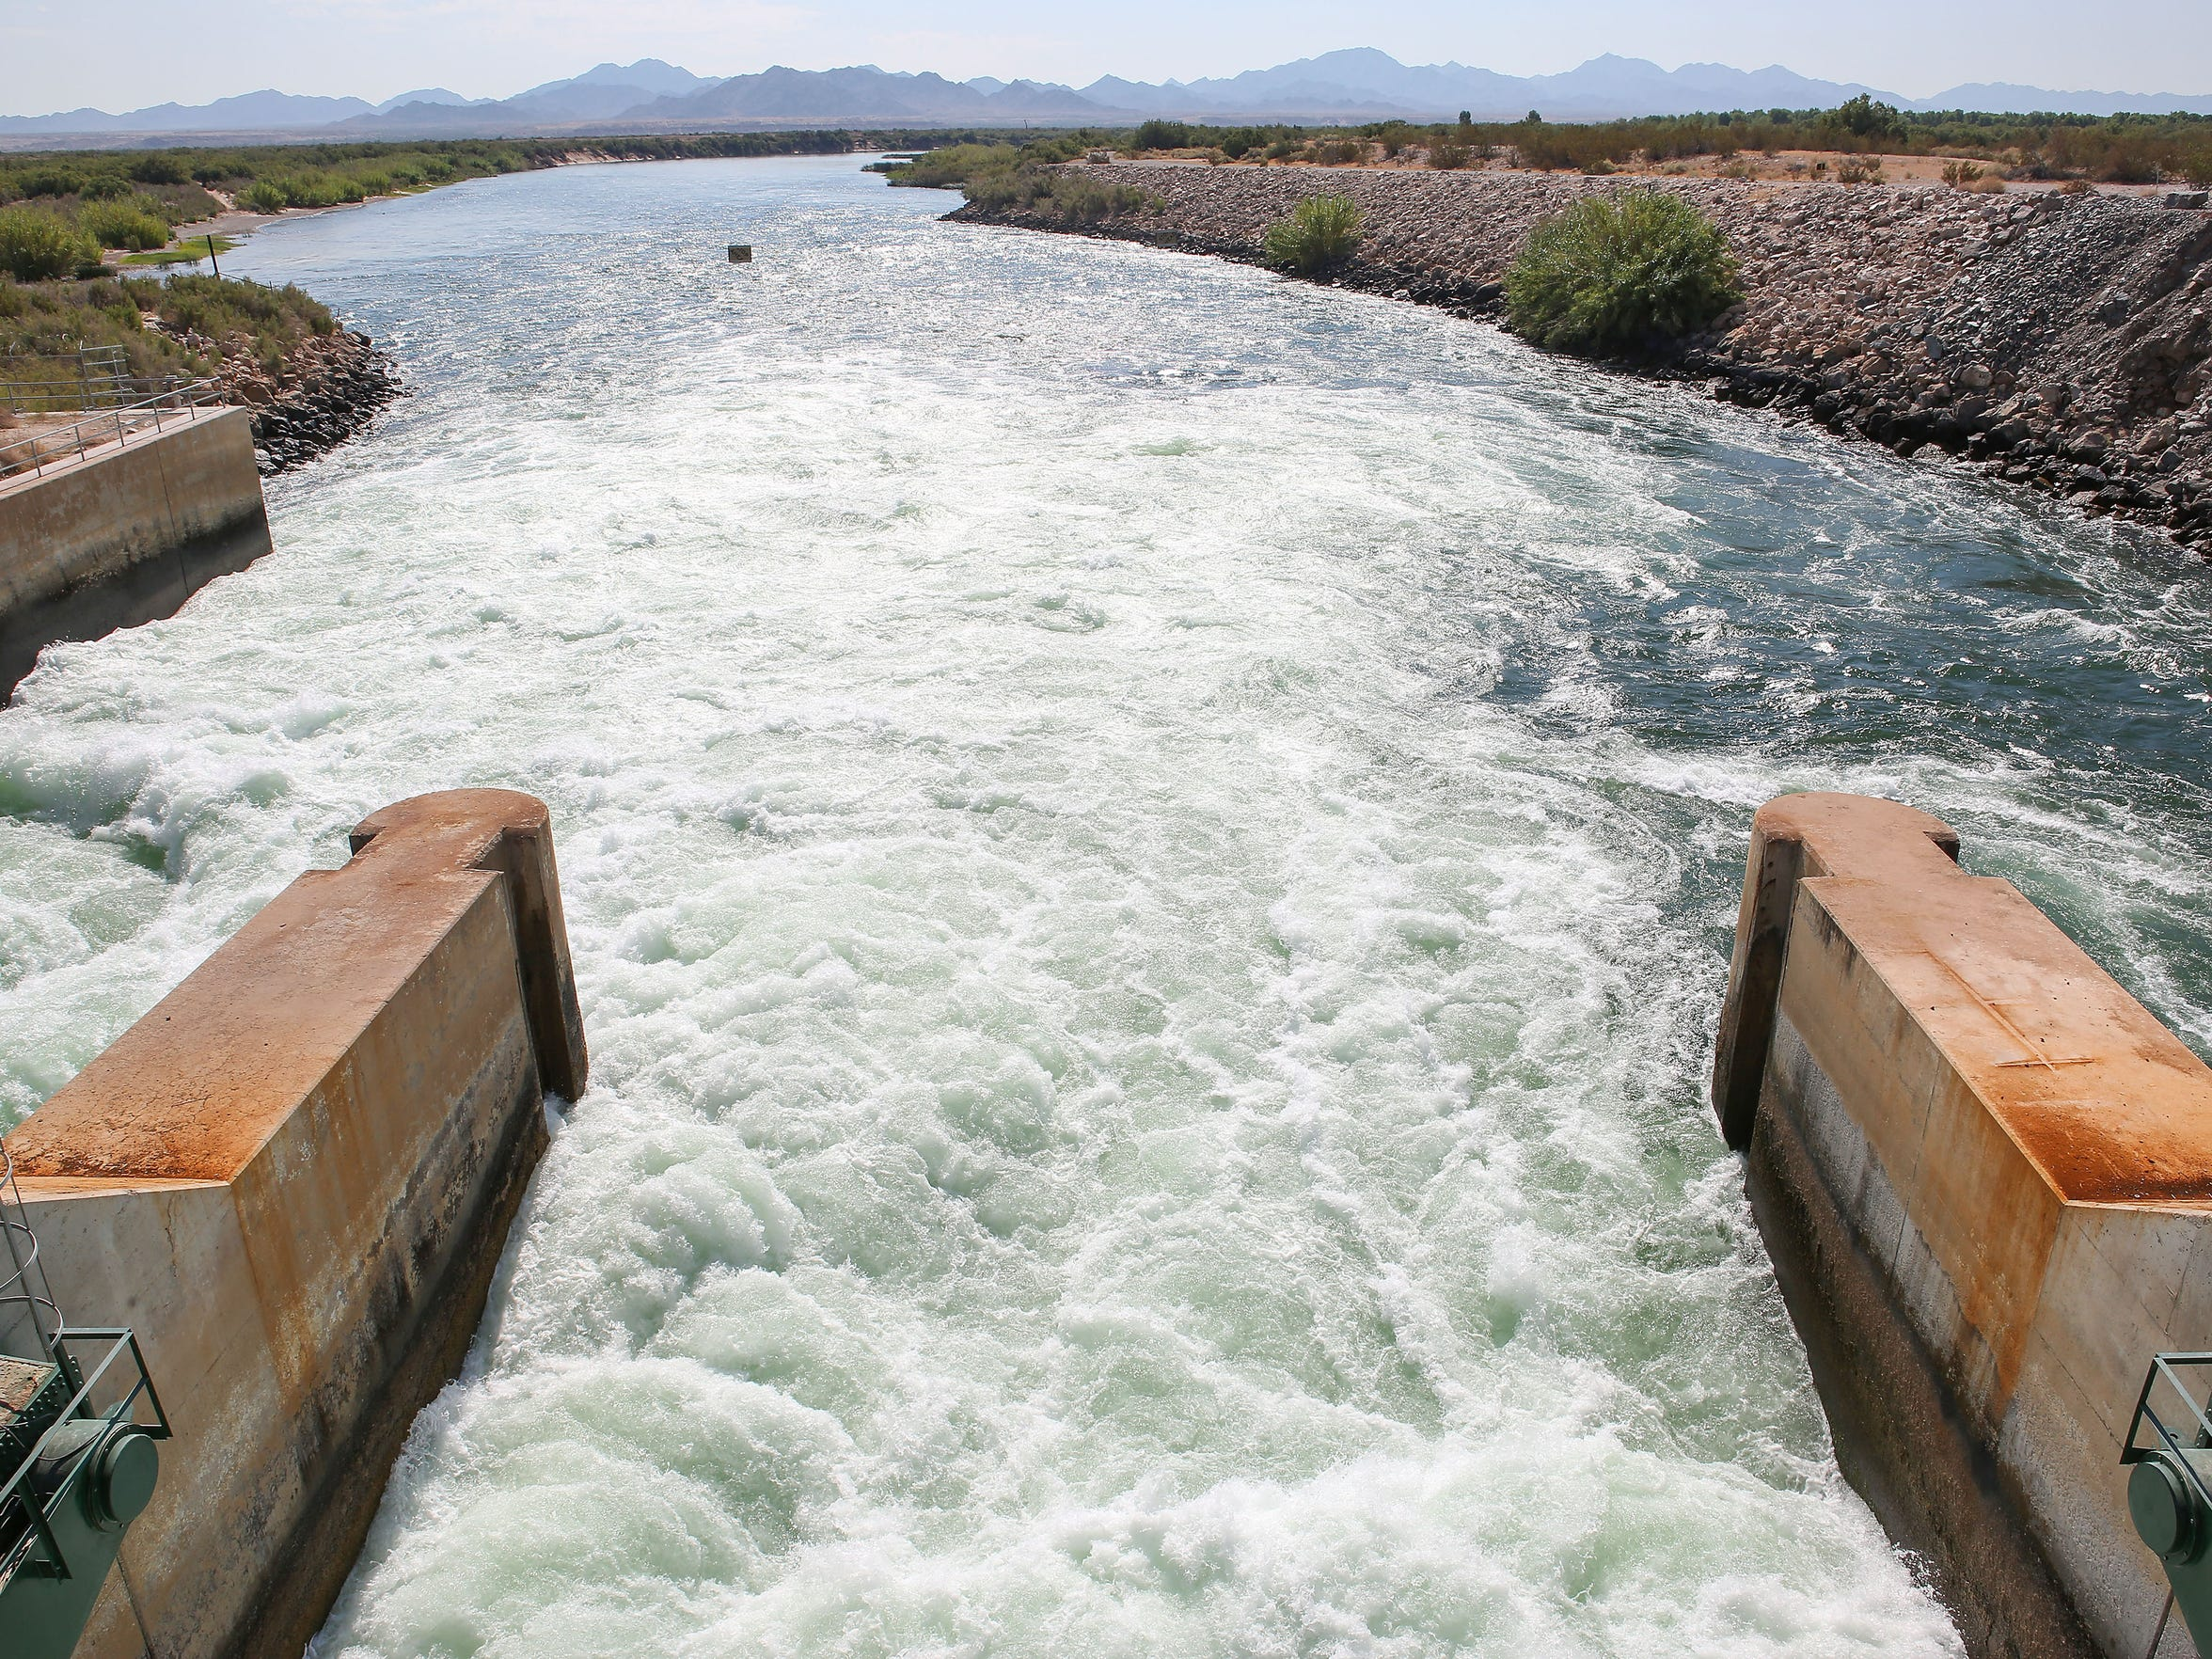 The Colorado River flows out of the Palo Verde Diversion Dam near Blythe.